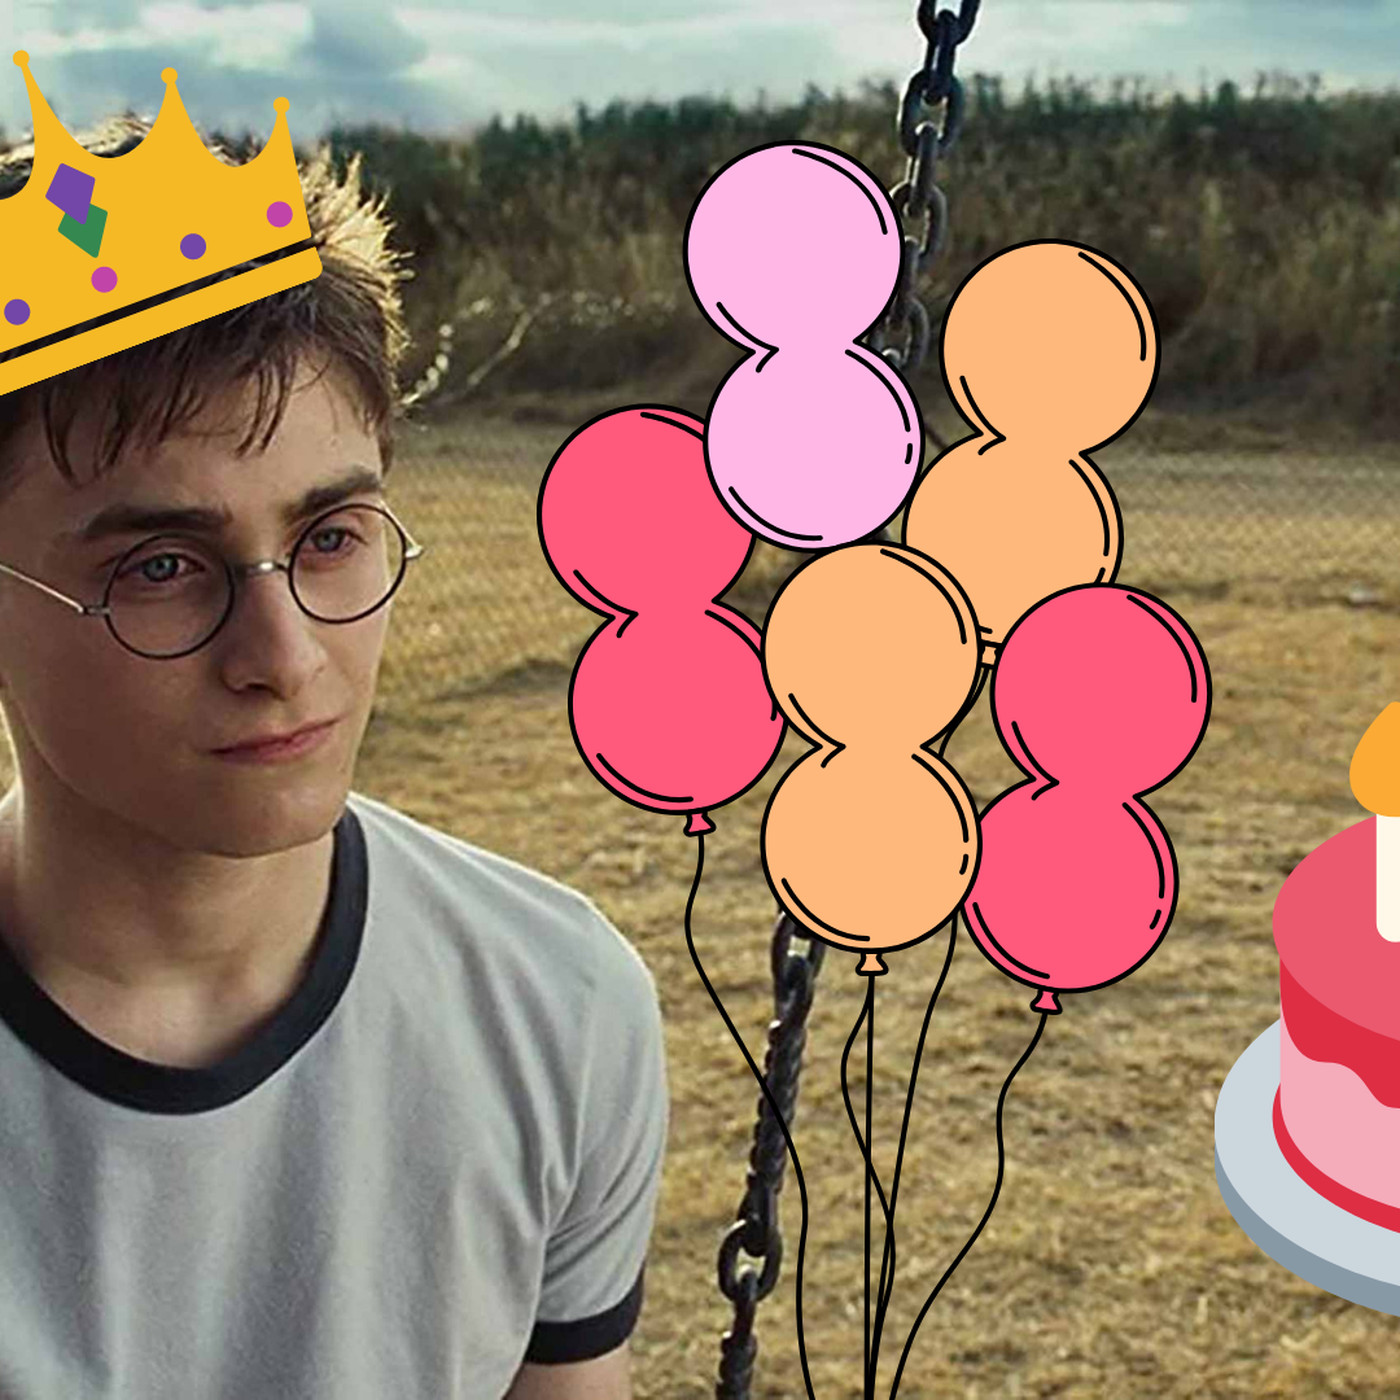 Judging If Harry Potters Birthdays Were All Awful Based On